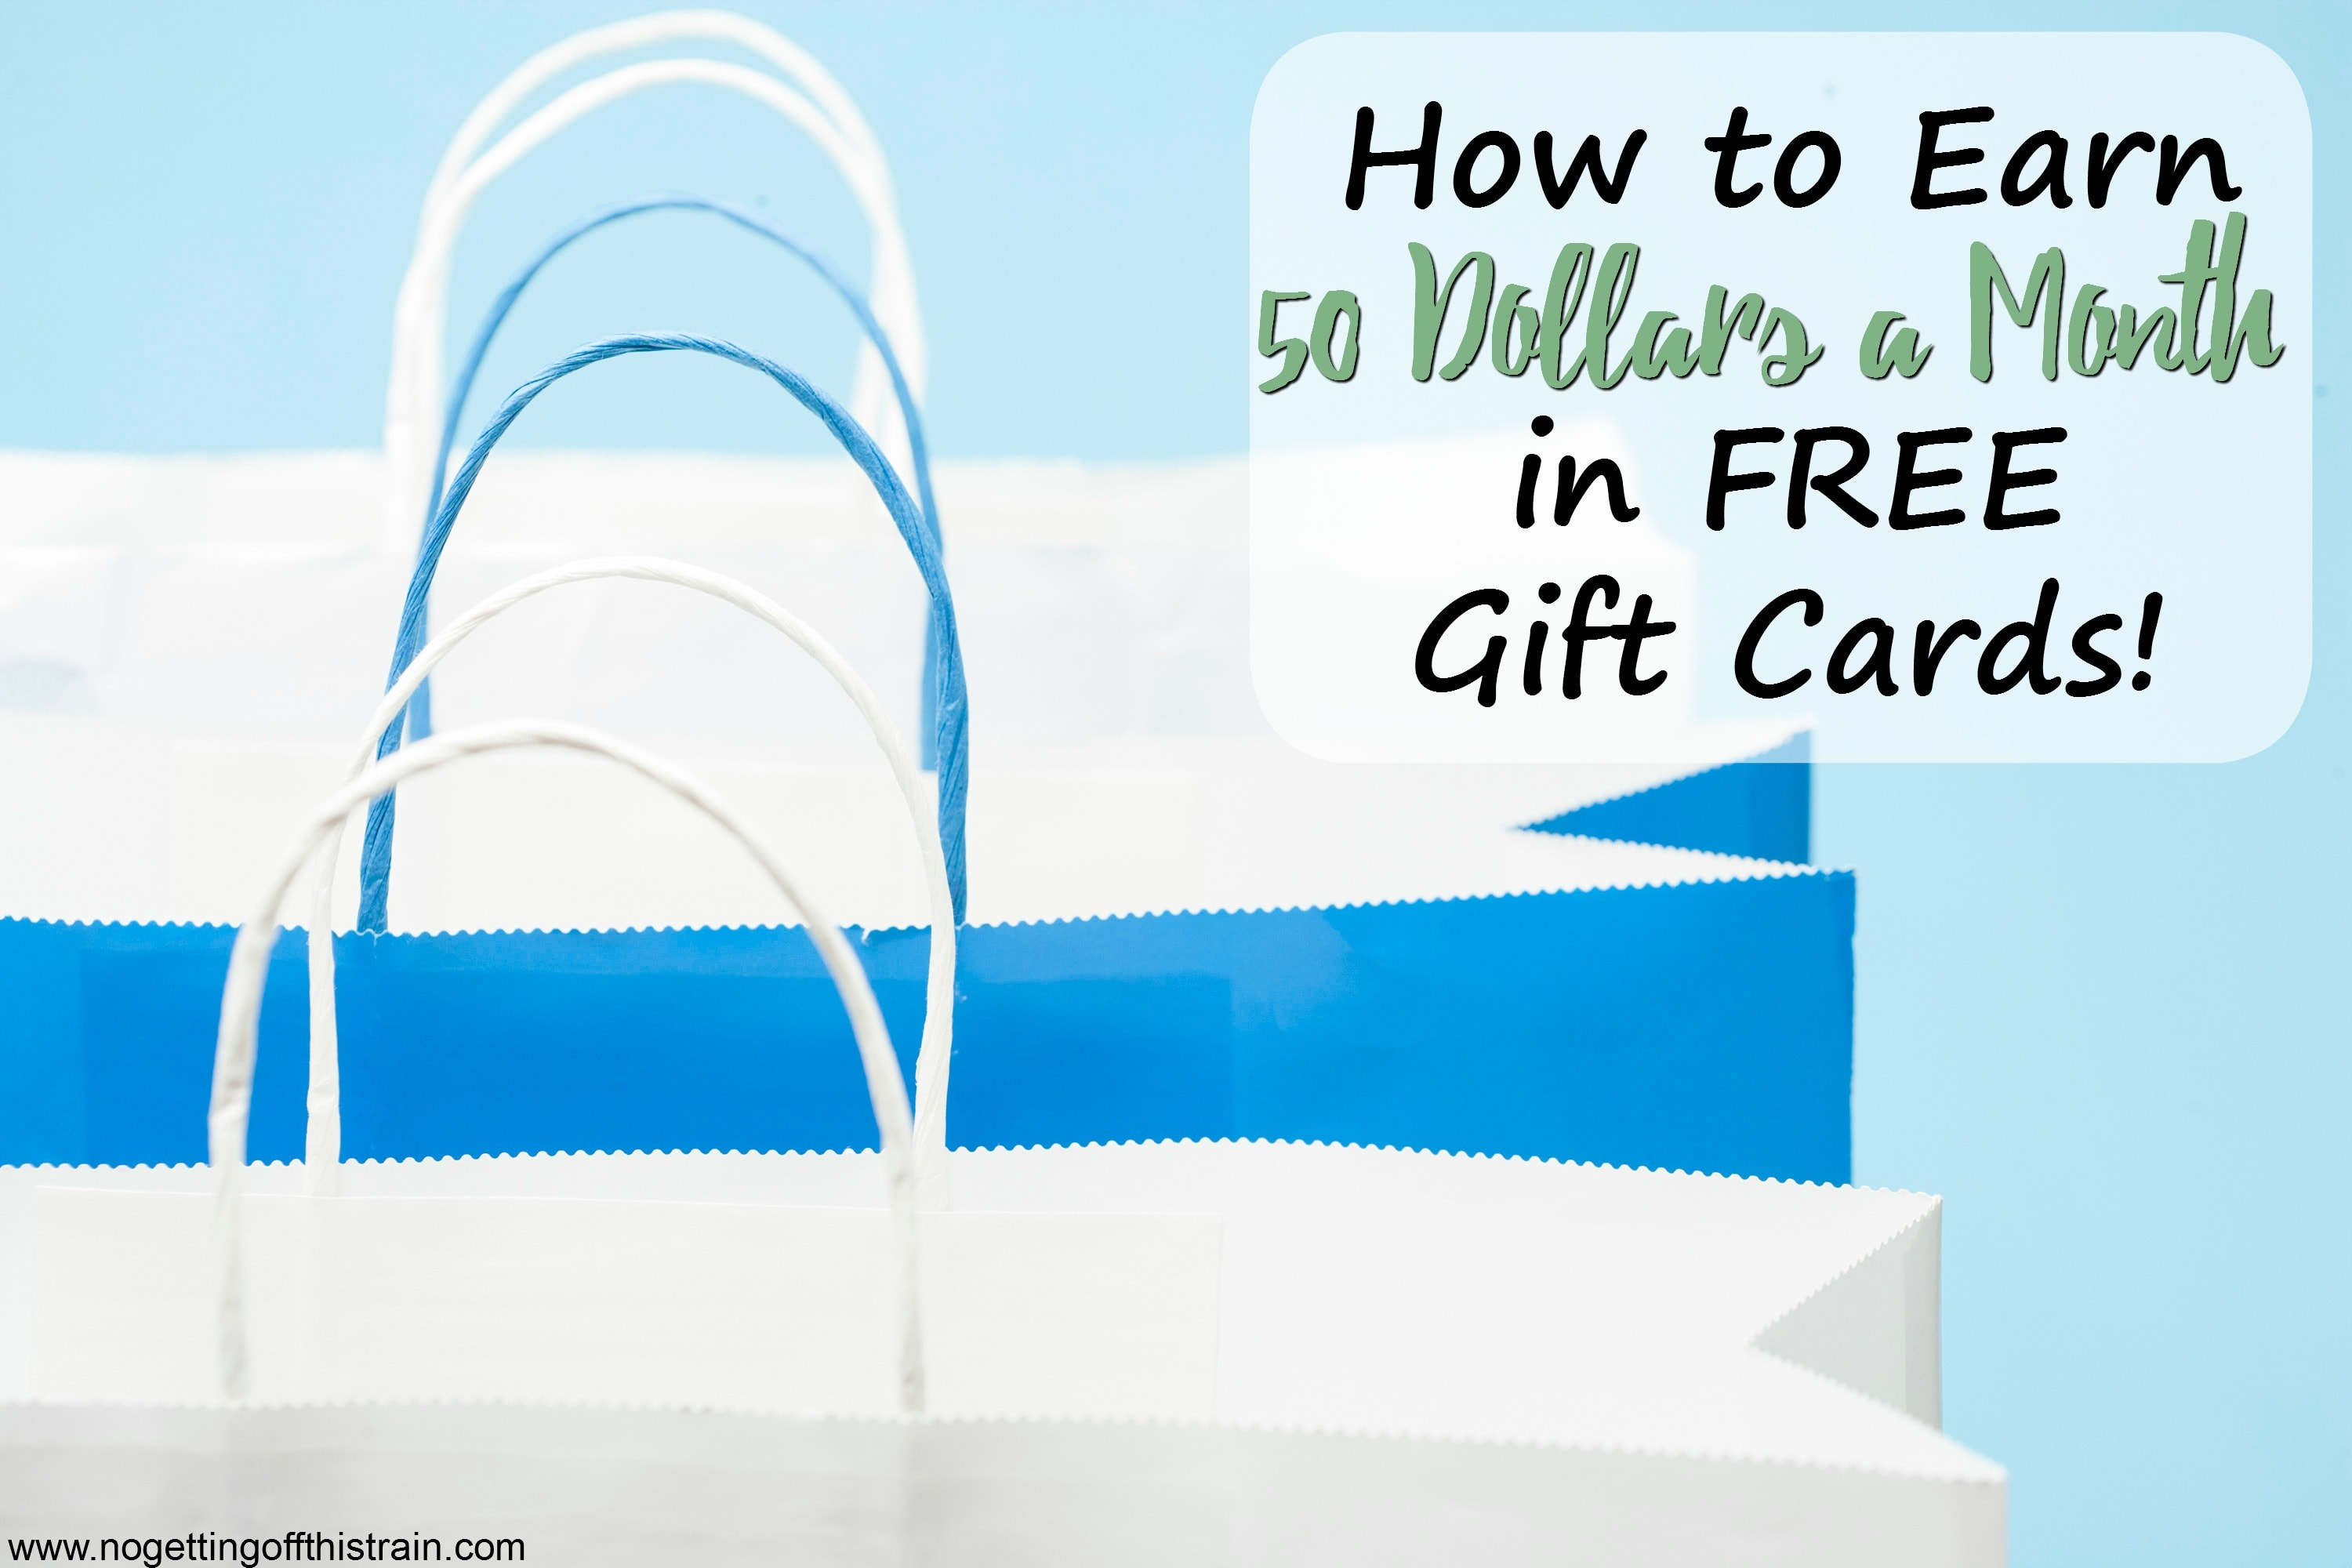 How to Earn 50 Dollars a Month in FREE Gift Cards!